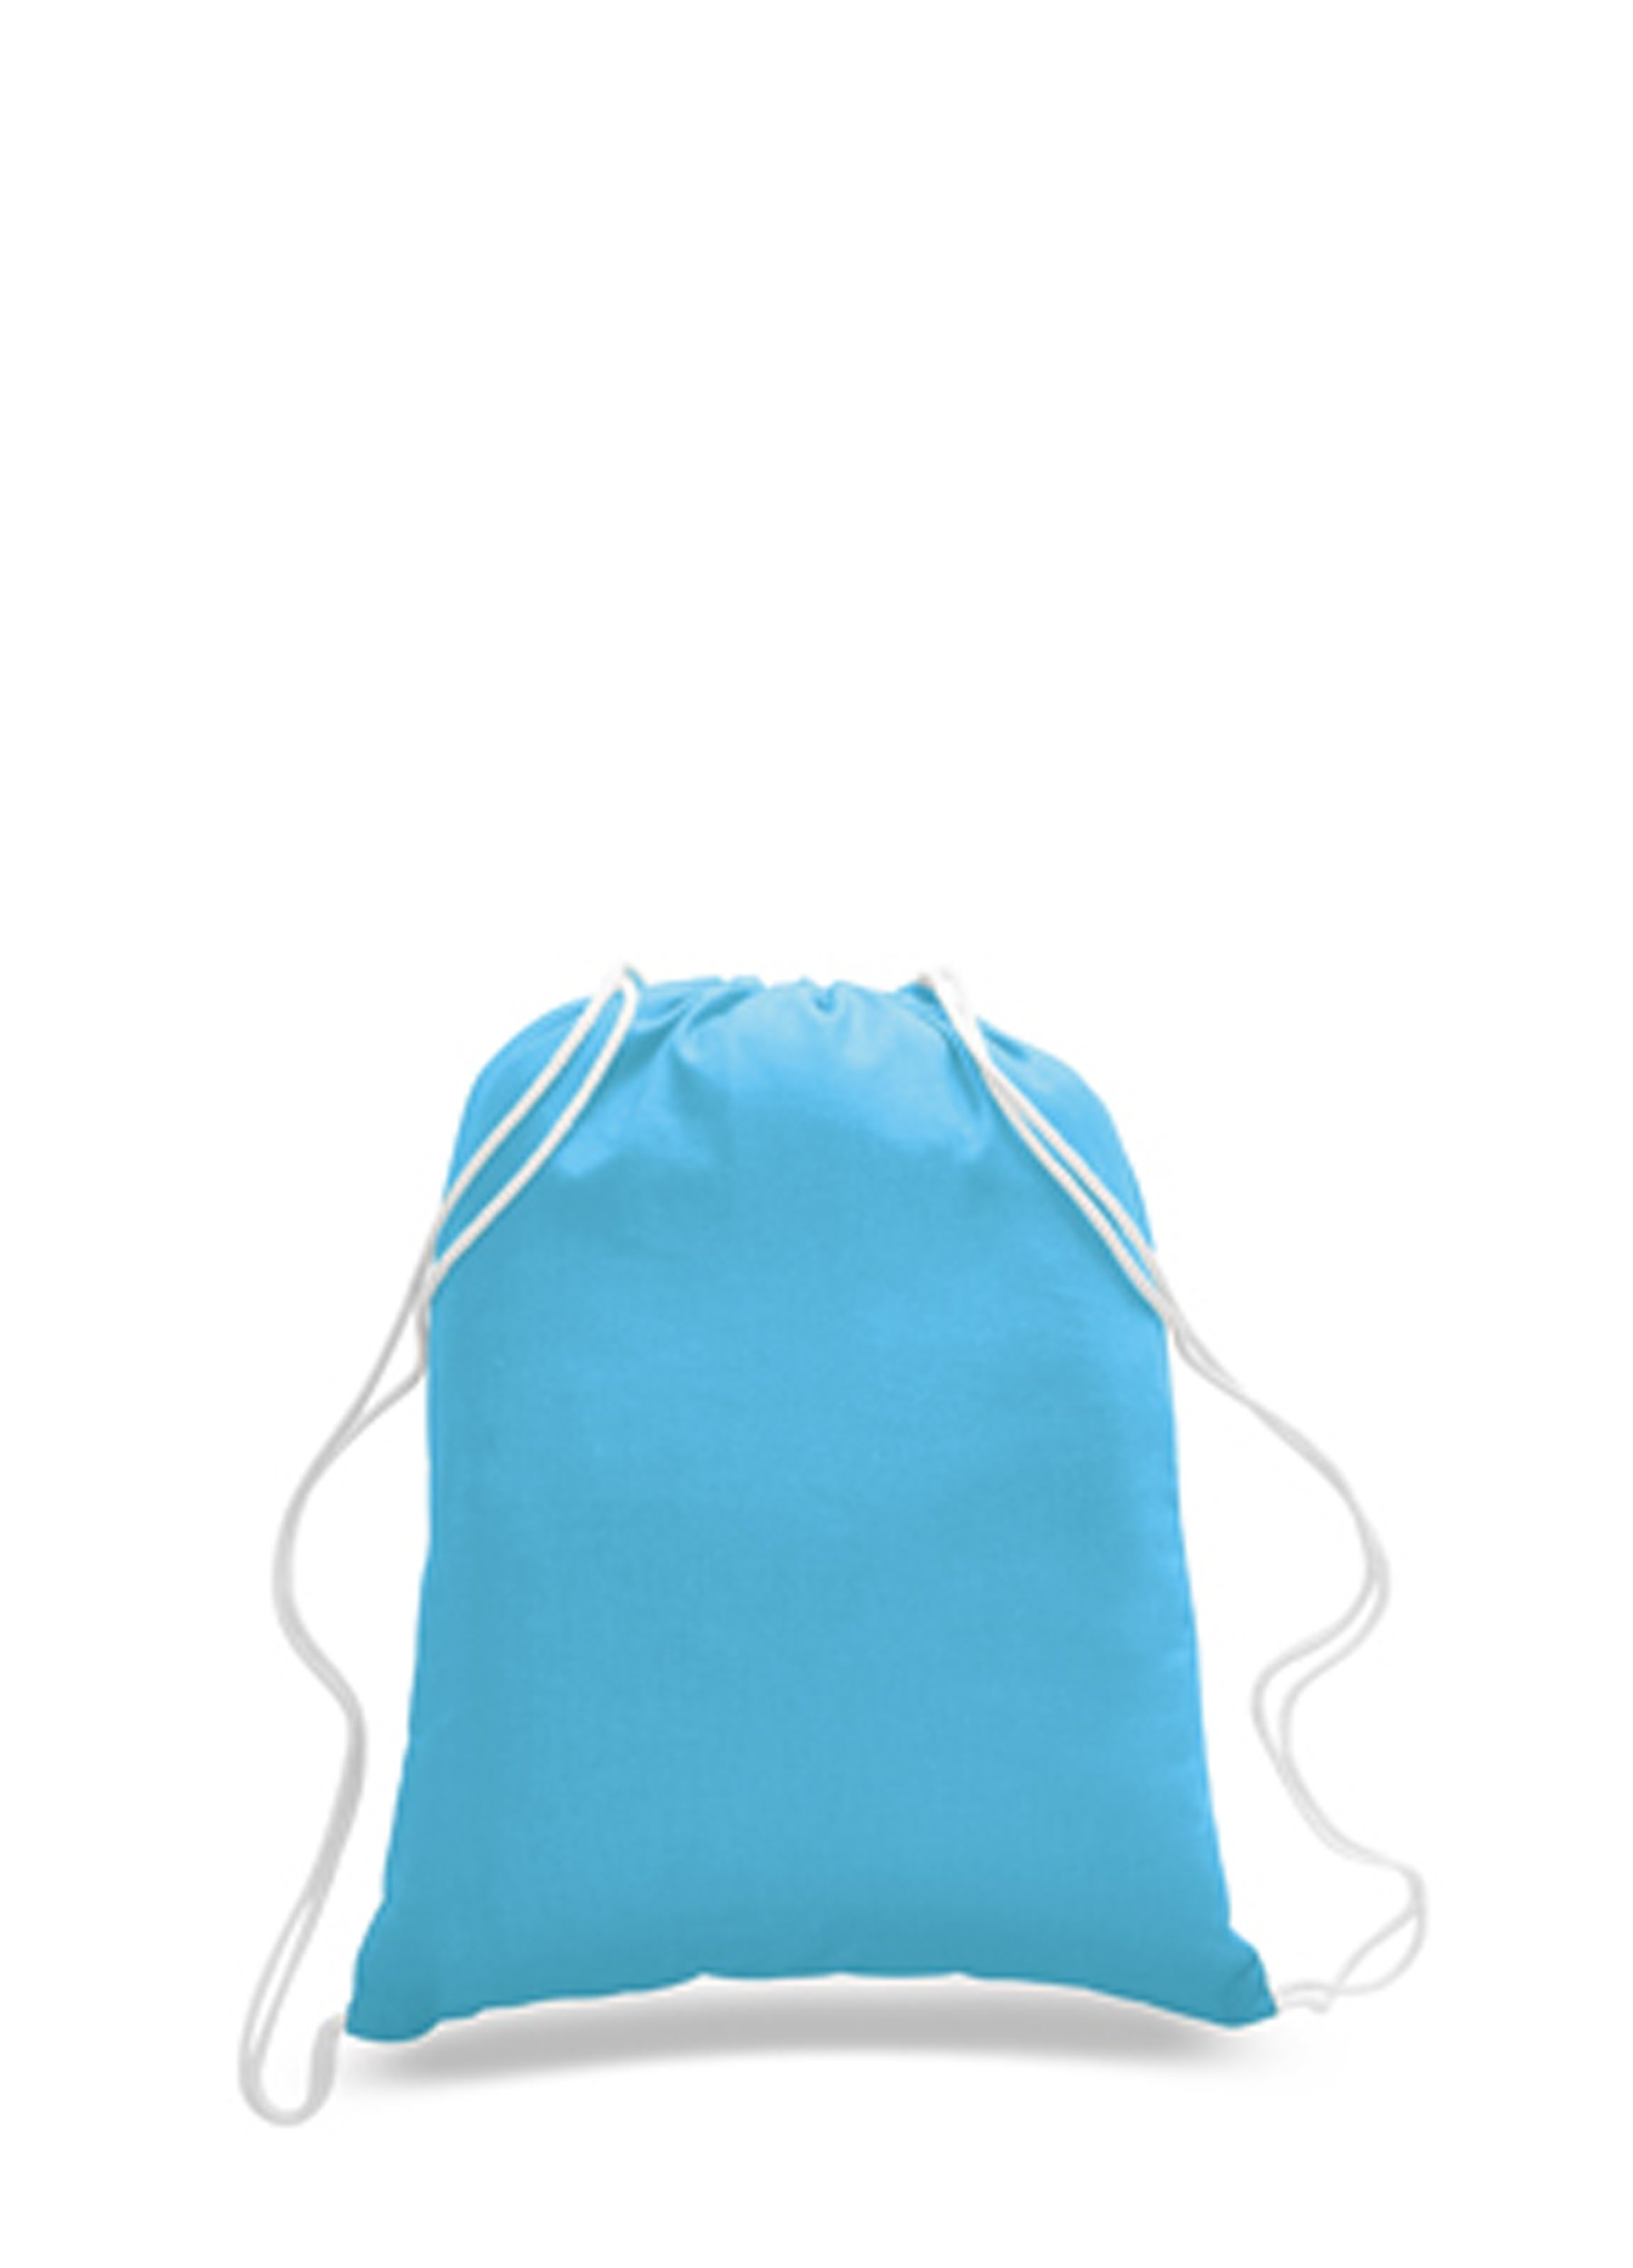 36 PACK - (3 Dozen) - Wholesale 100% Cotton Drawstring Backpack Bags - Arts and Crafts Bags - HTV - Vinyl - DIY - Screen Print - Embroidery Blanks Cinch Bags BULK Sack Packs - BPK18 (Turquoise)